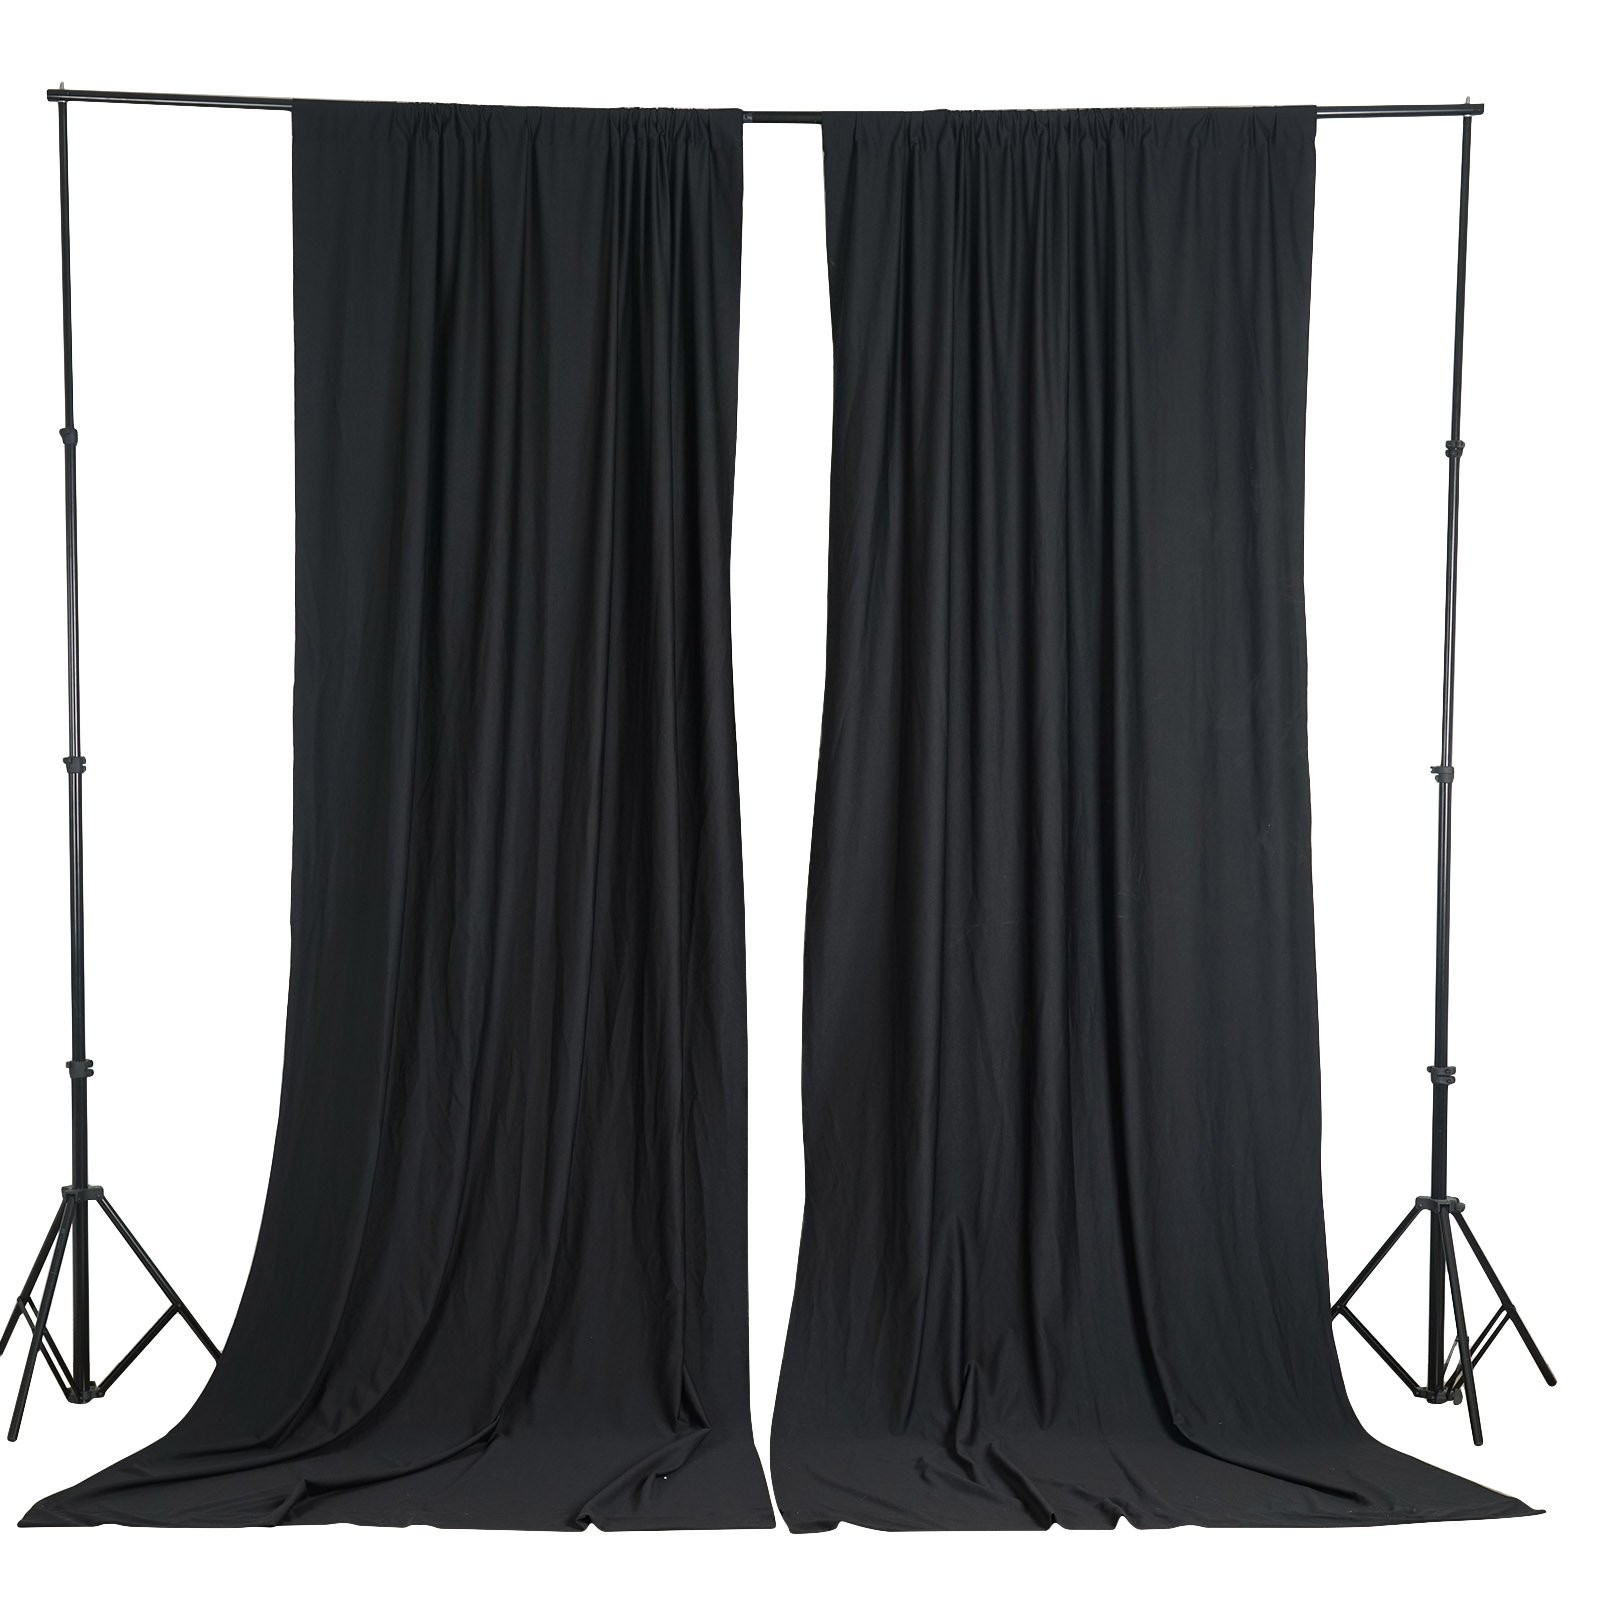 How Wide Should Curtains Be For 72 Inch Window